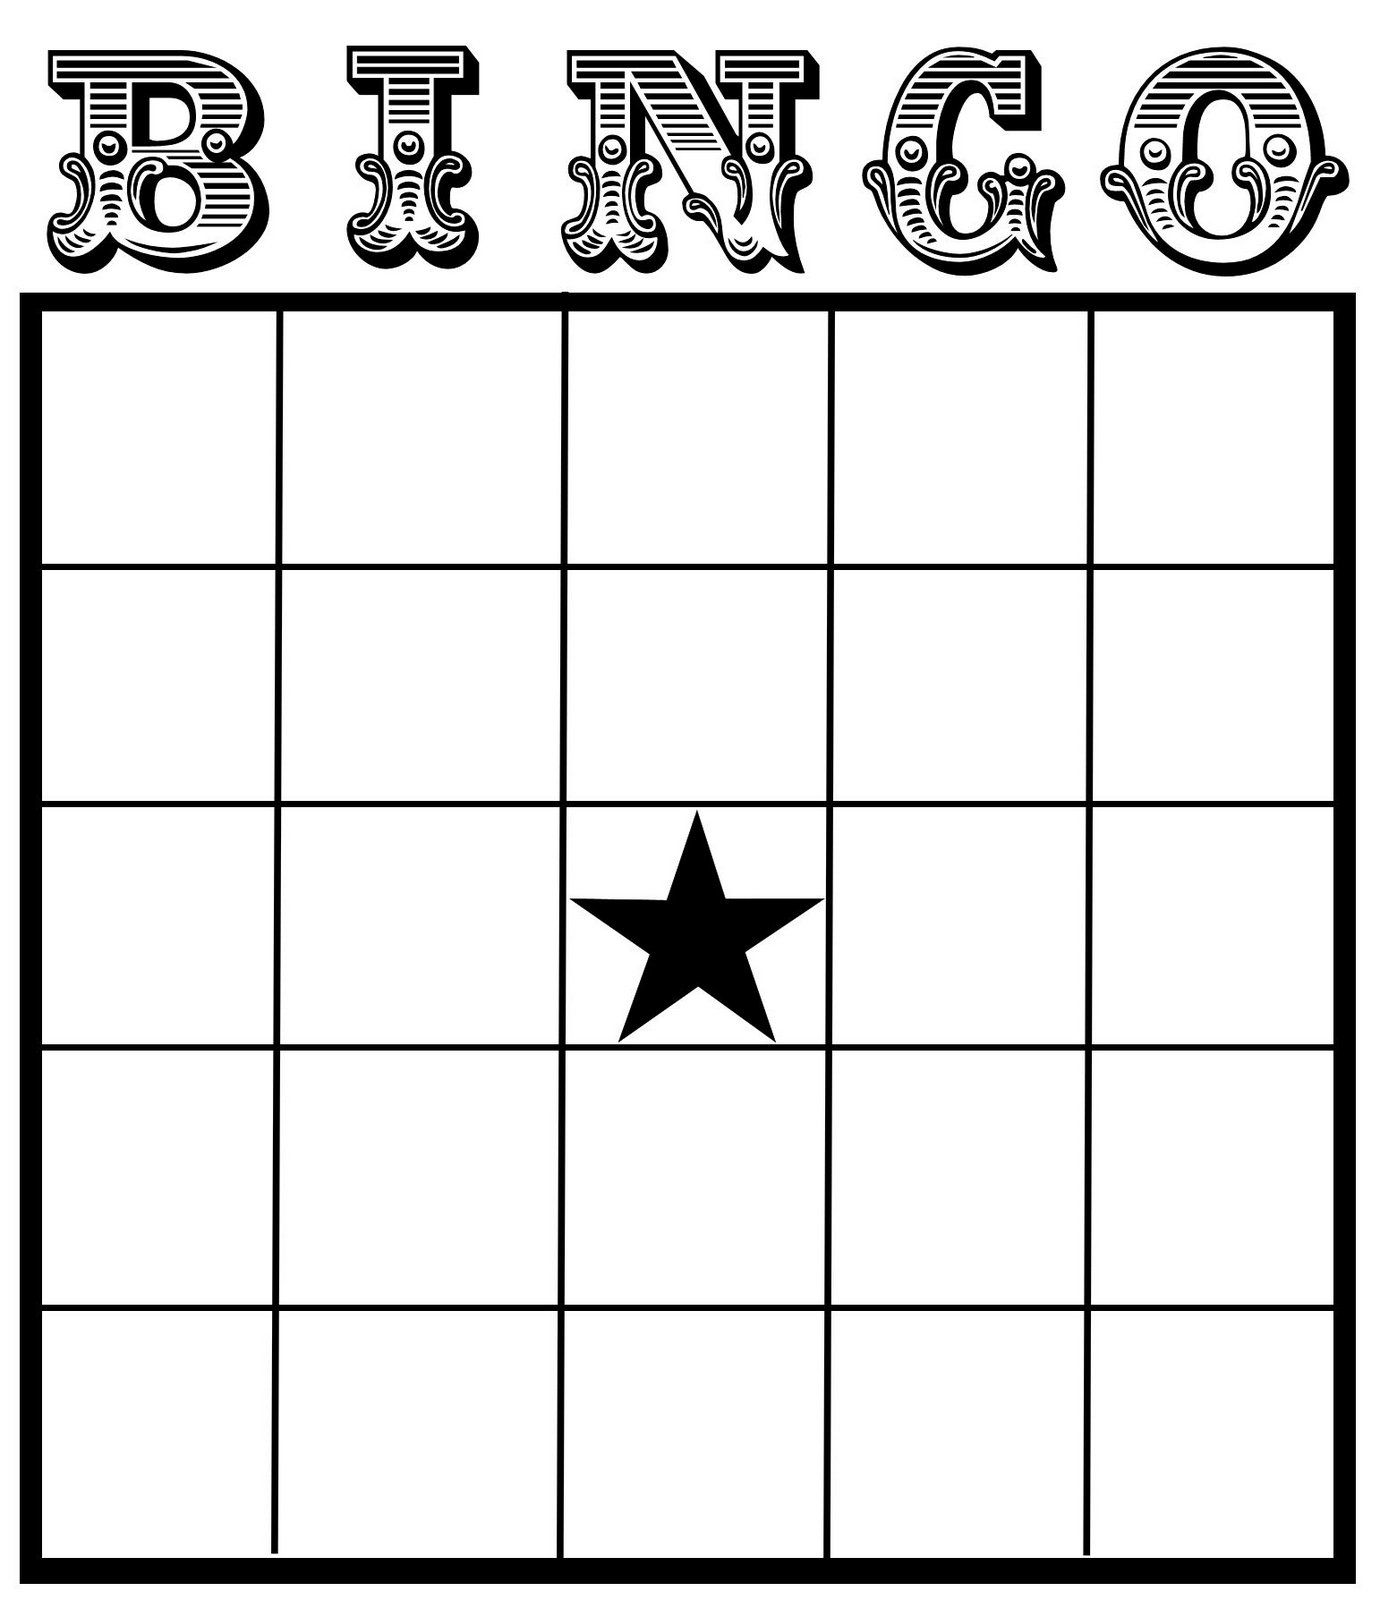 Christine zani bingo card printables to share reading writing christine zani bingo card printables to share solutioingenieria Images